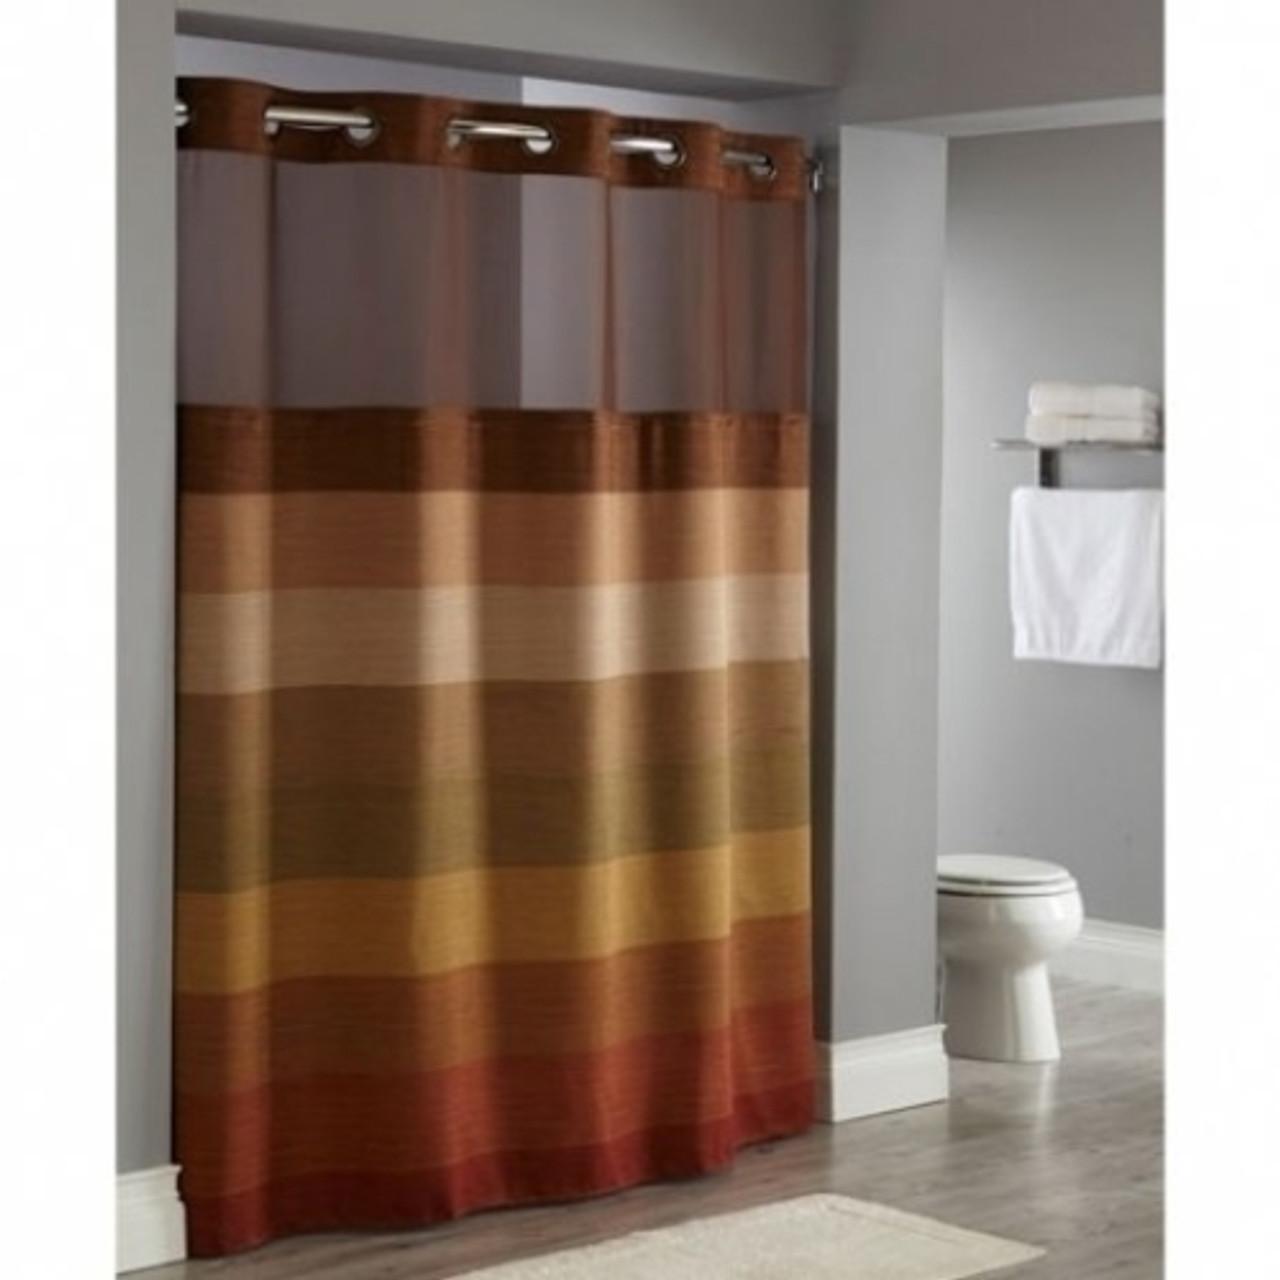 Stratus Window Hookless Shower Curtain Hotelstoyoucom